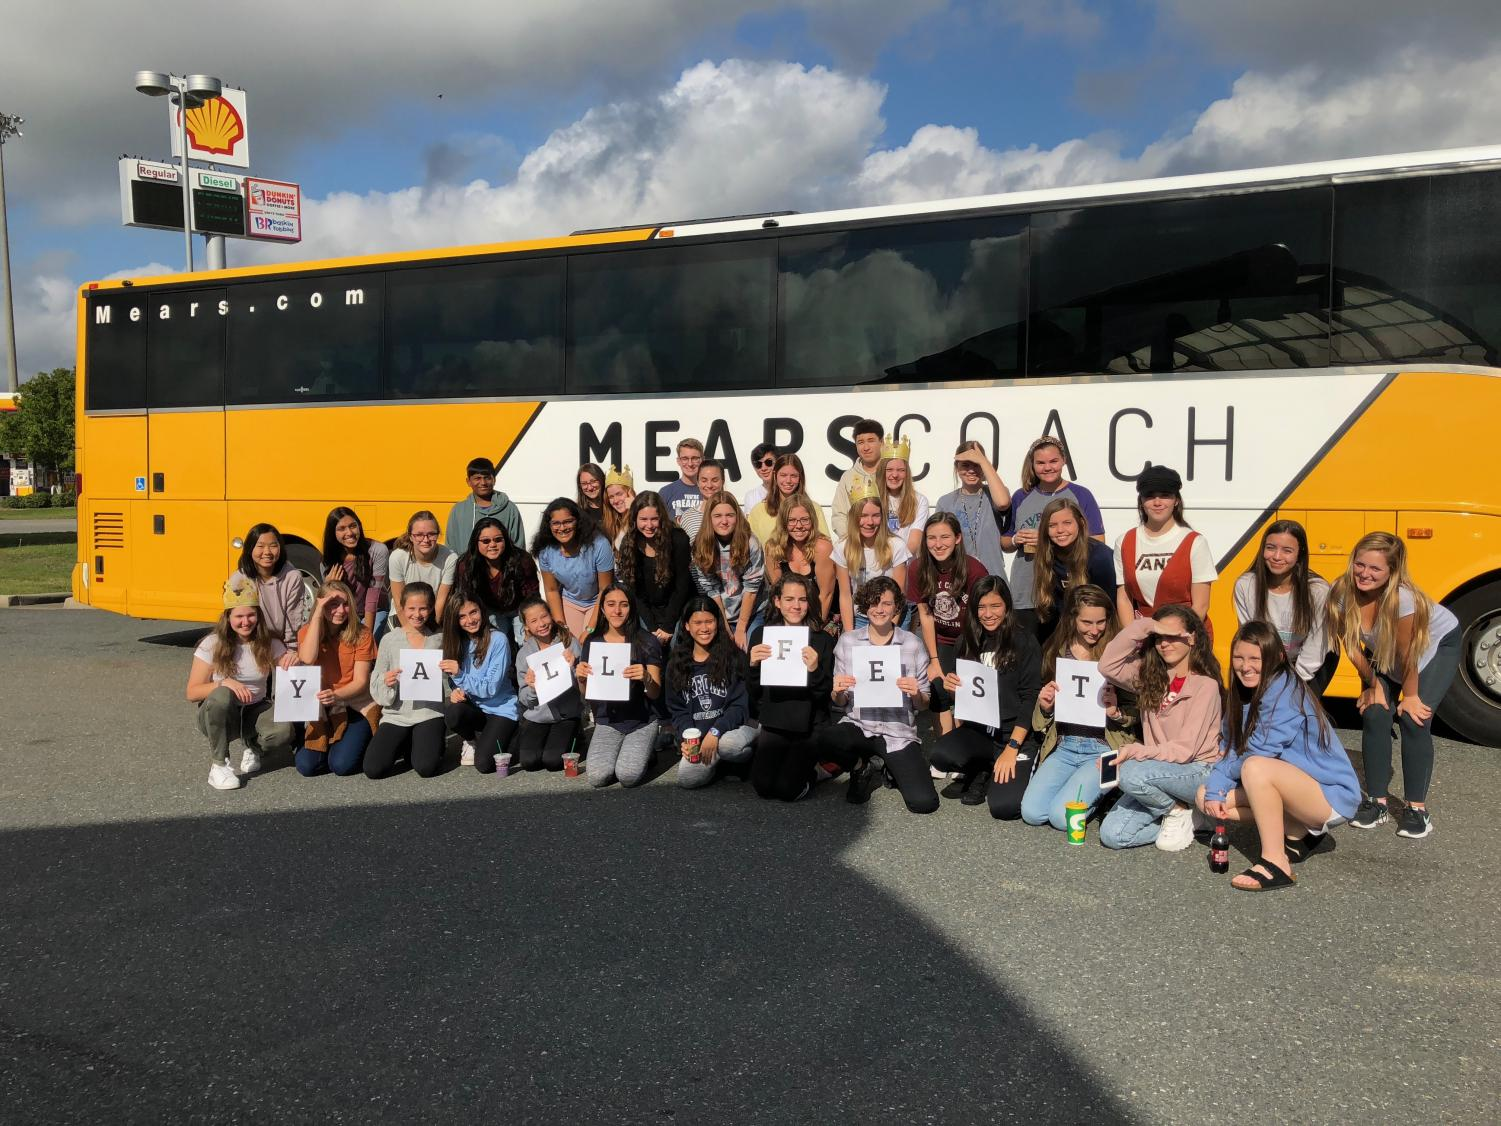 The group of students that went to YALLFest traveled to Charleston, South Carolina on a six-hour bus ride. Many of them were looking forward to meeting their favorite authors.